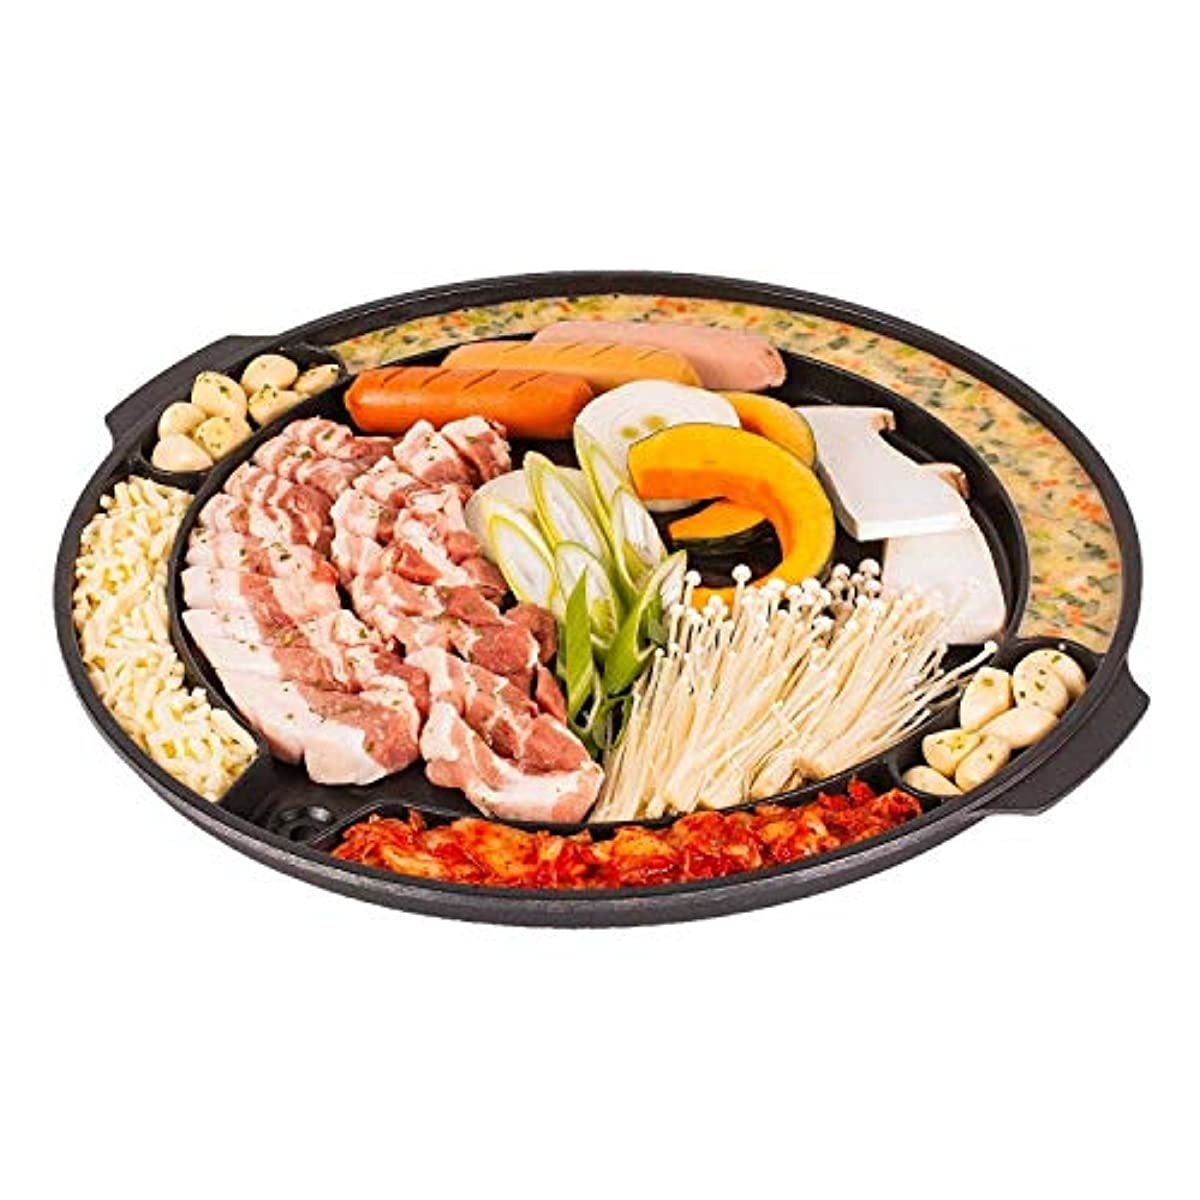 Master Grill Pan Korean Traditional BBQ Grill